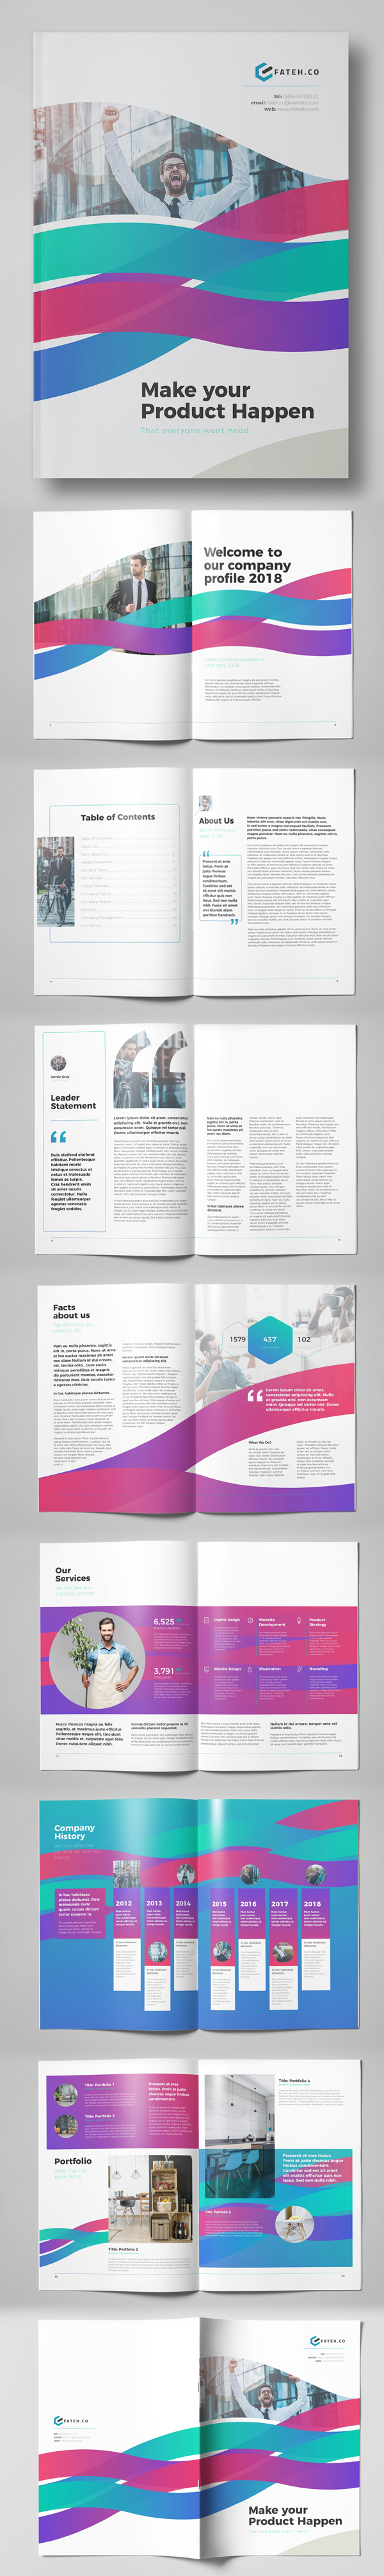 Creative Business Brochure Template (24 Pages)